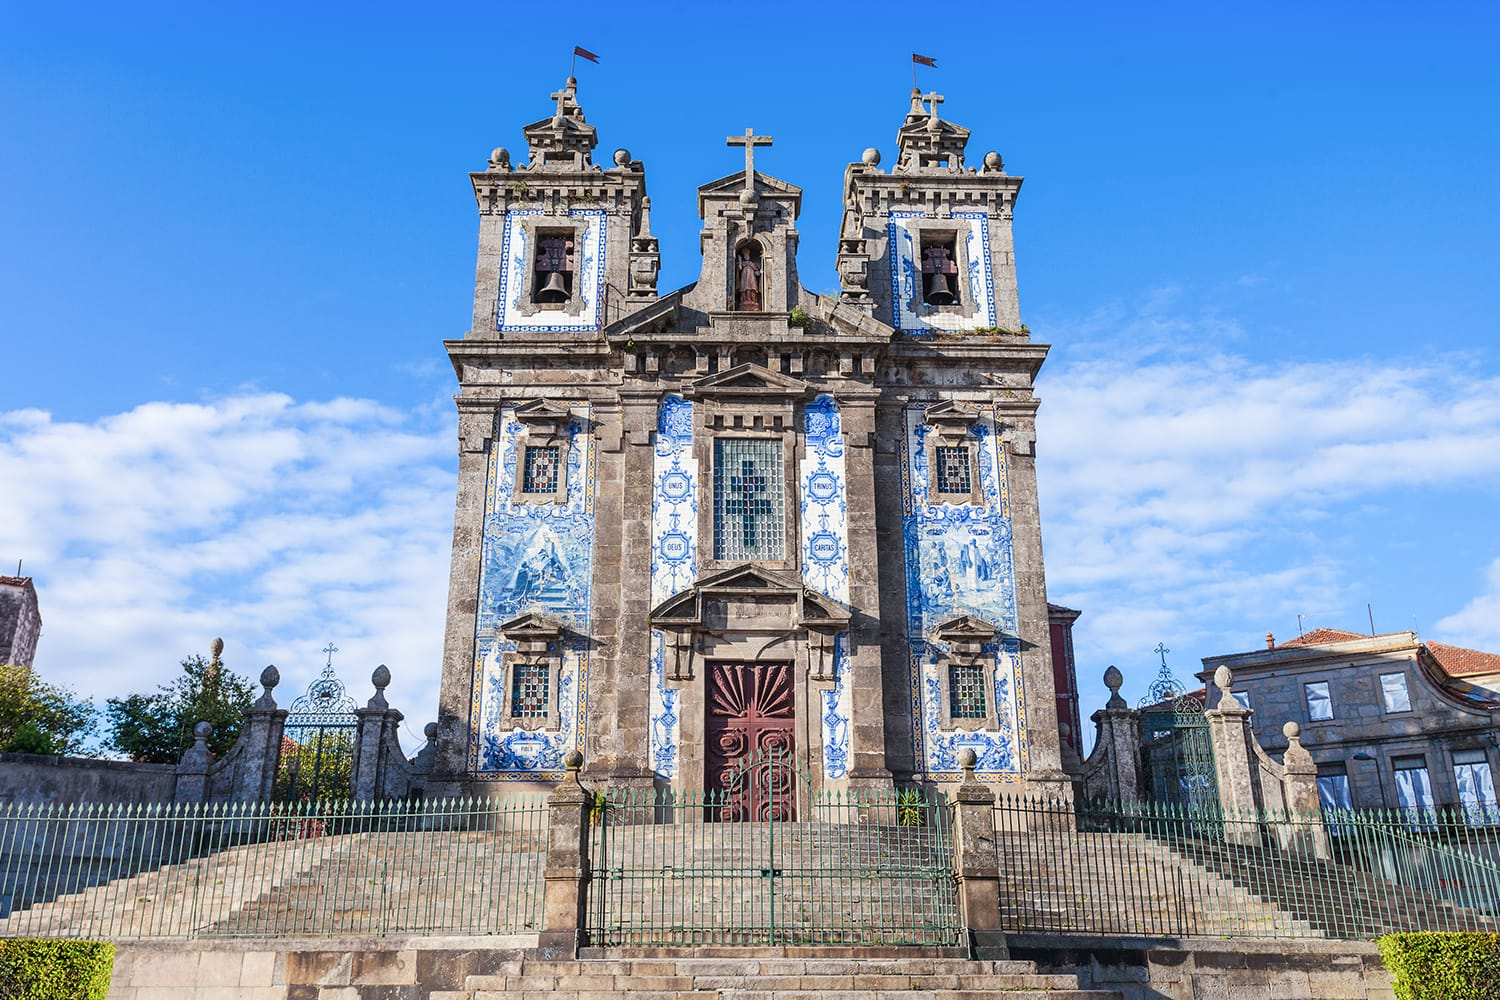 Church of Saint Ildefonso (Igreja de Santo Ildefonso) is an eighteenth-century church in Porto, Portugal